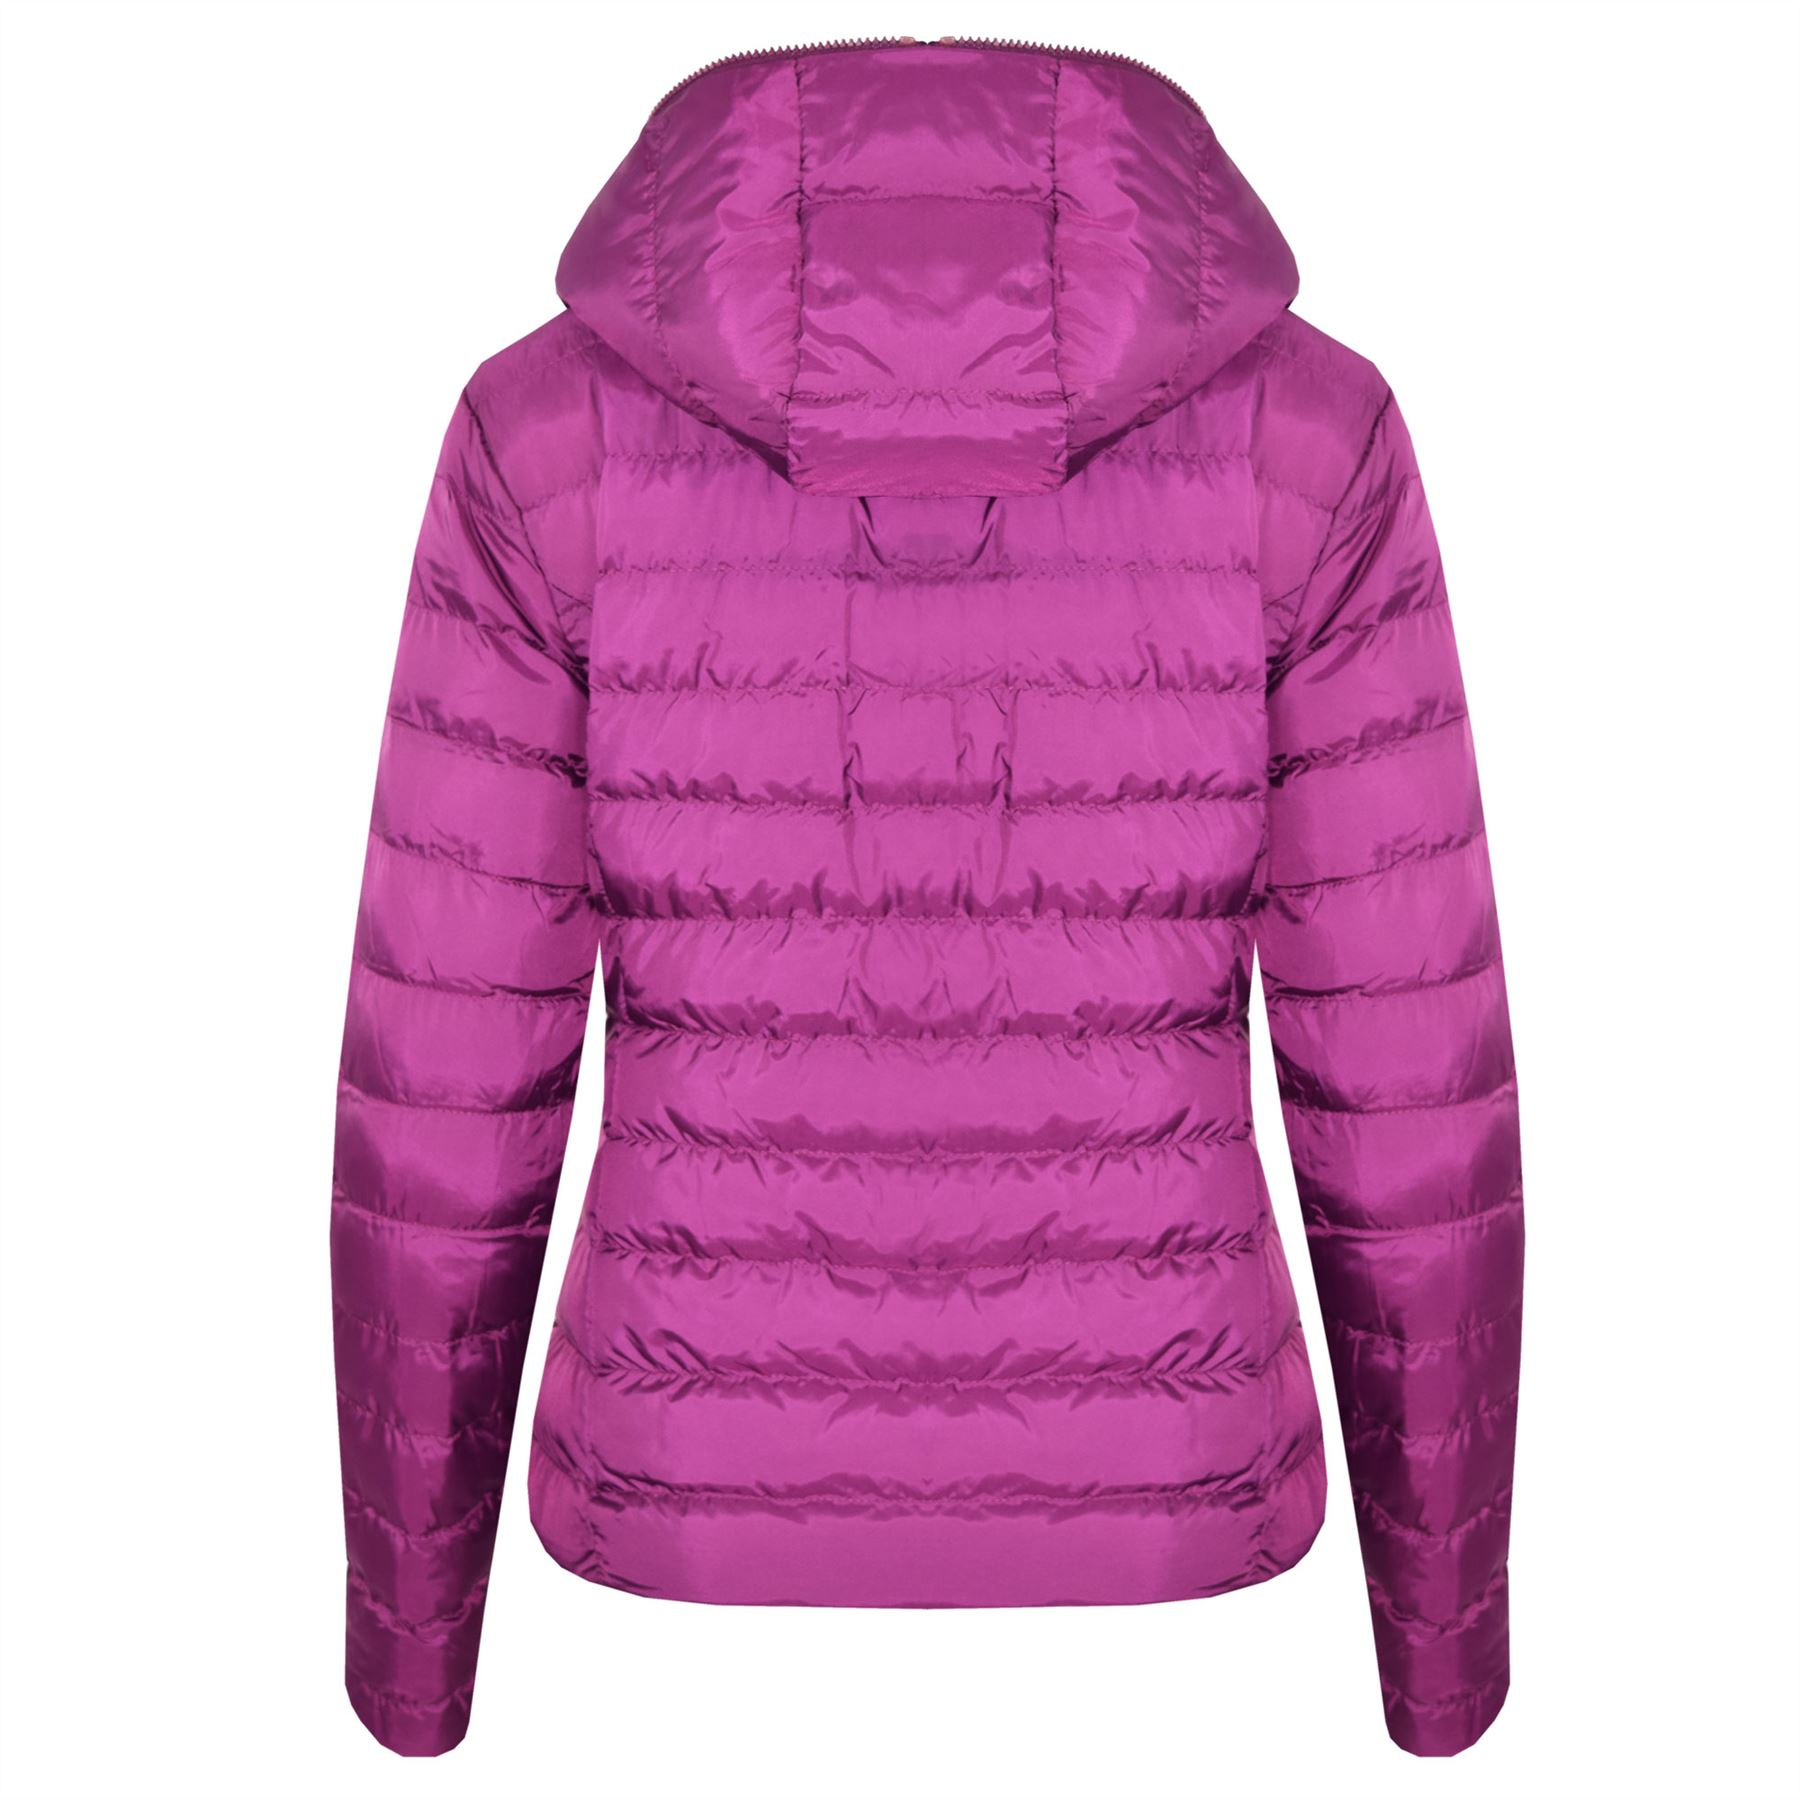 New-Womens-Hooded-Reversible-Puffa-Zip-Up-Quilted-Padded-Coat-Jacket thumbnail 7